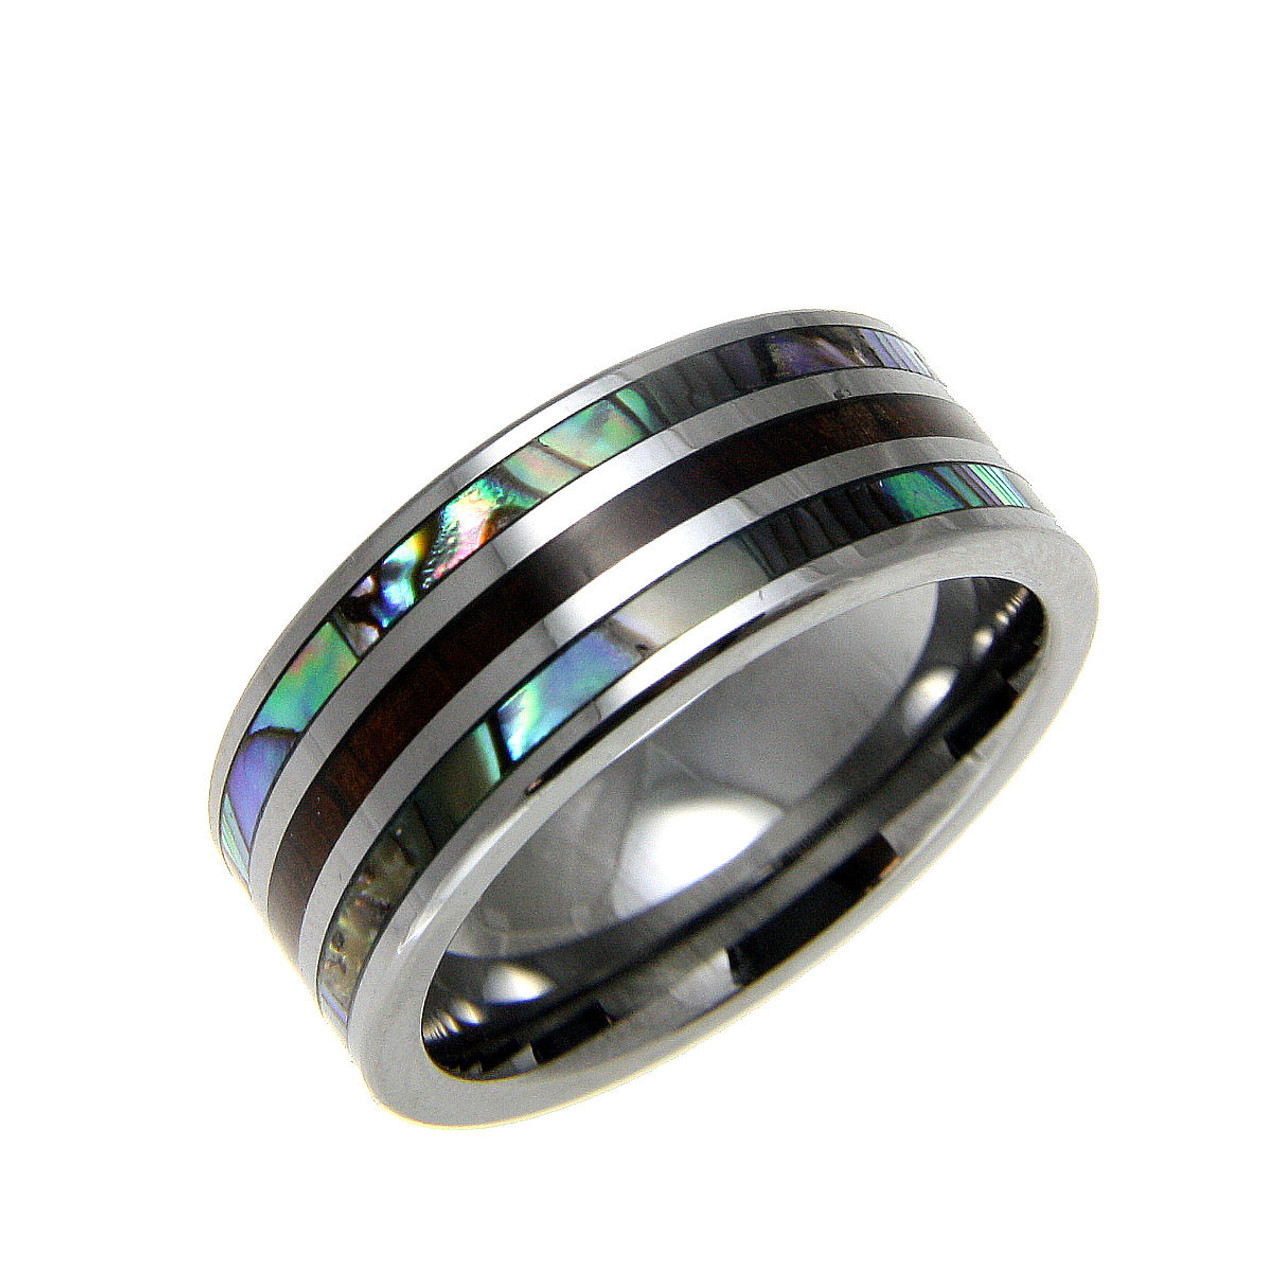 tungsten designed and c nickel wedding for rings free patterned bands band